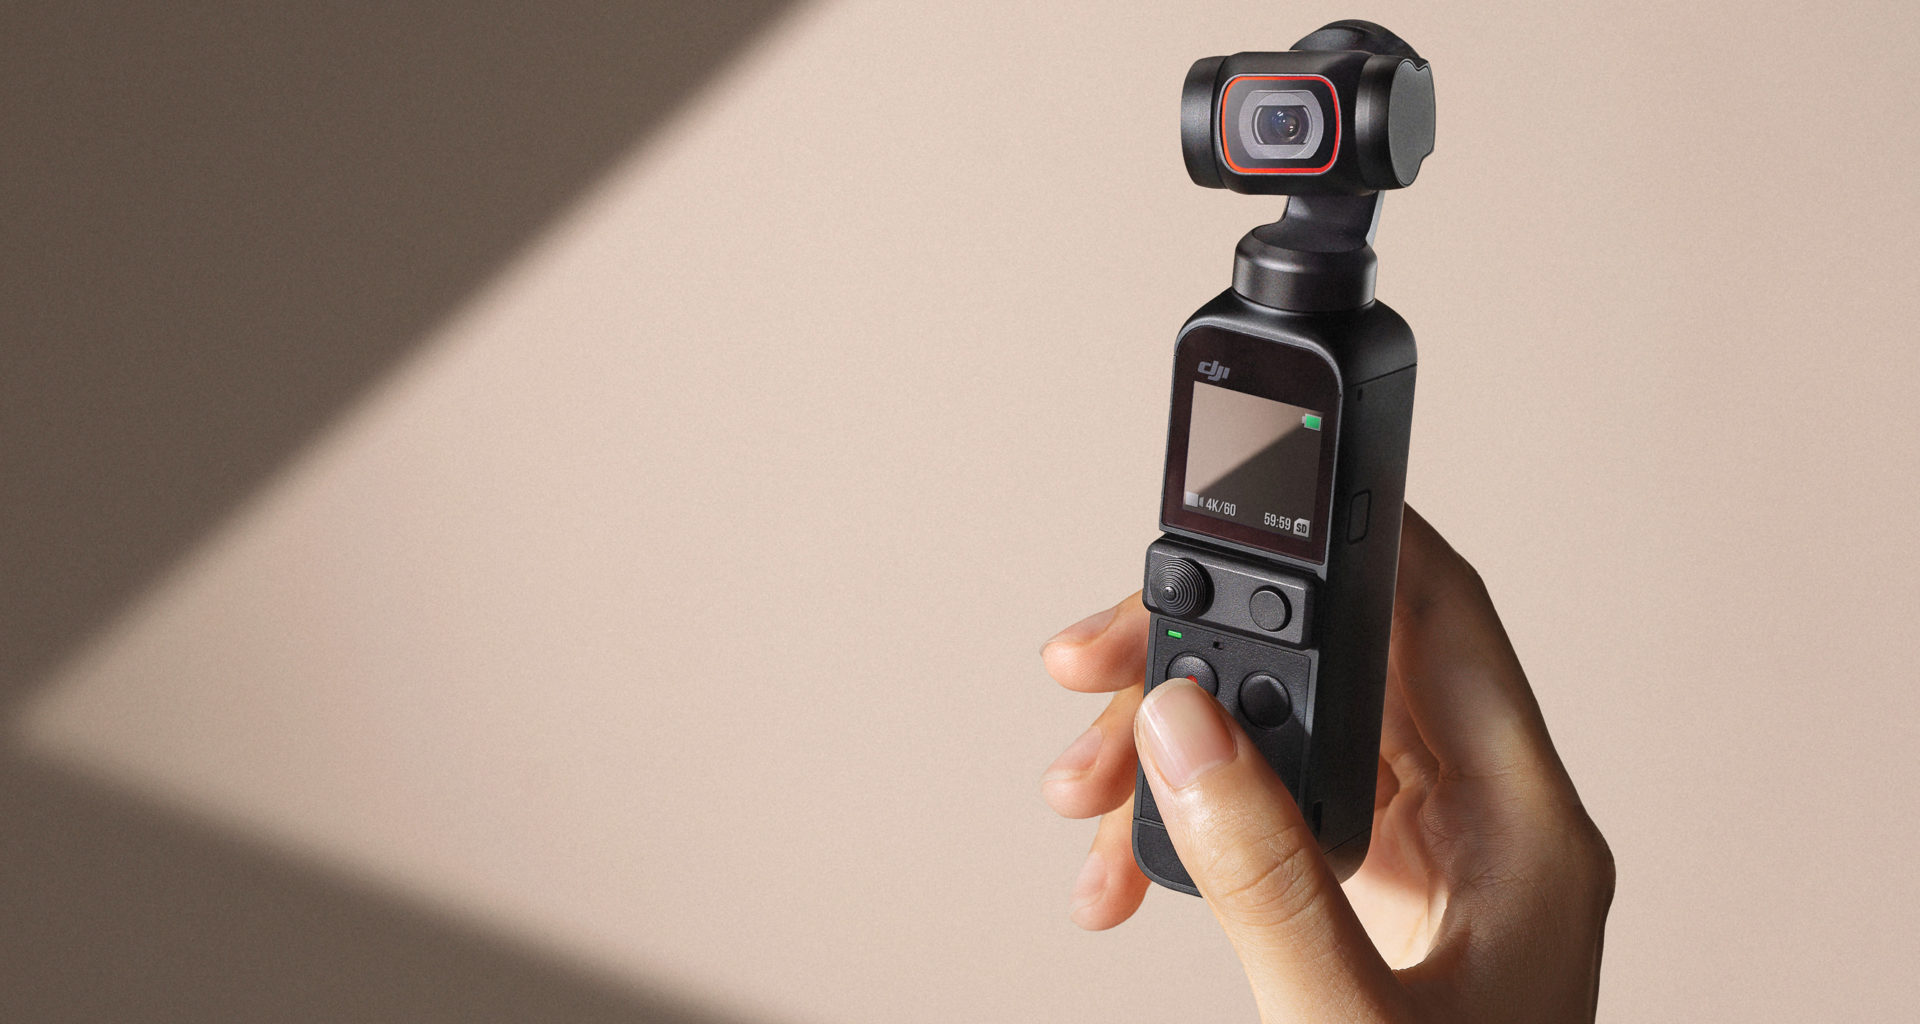 DJI launched DJI Pocket 2 tiny camera with improved camera and audio specifications